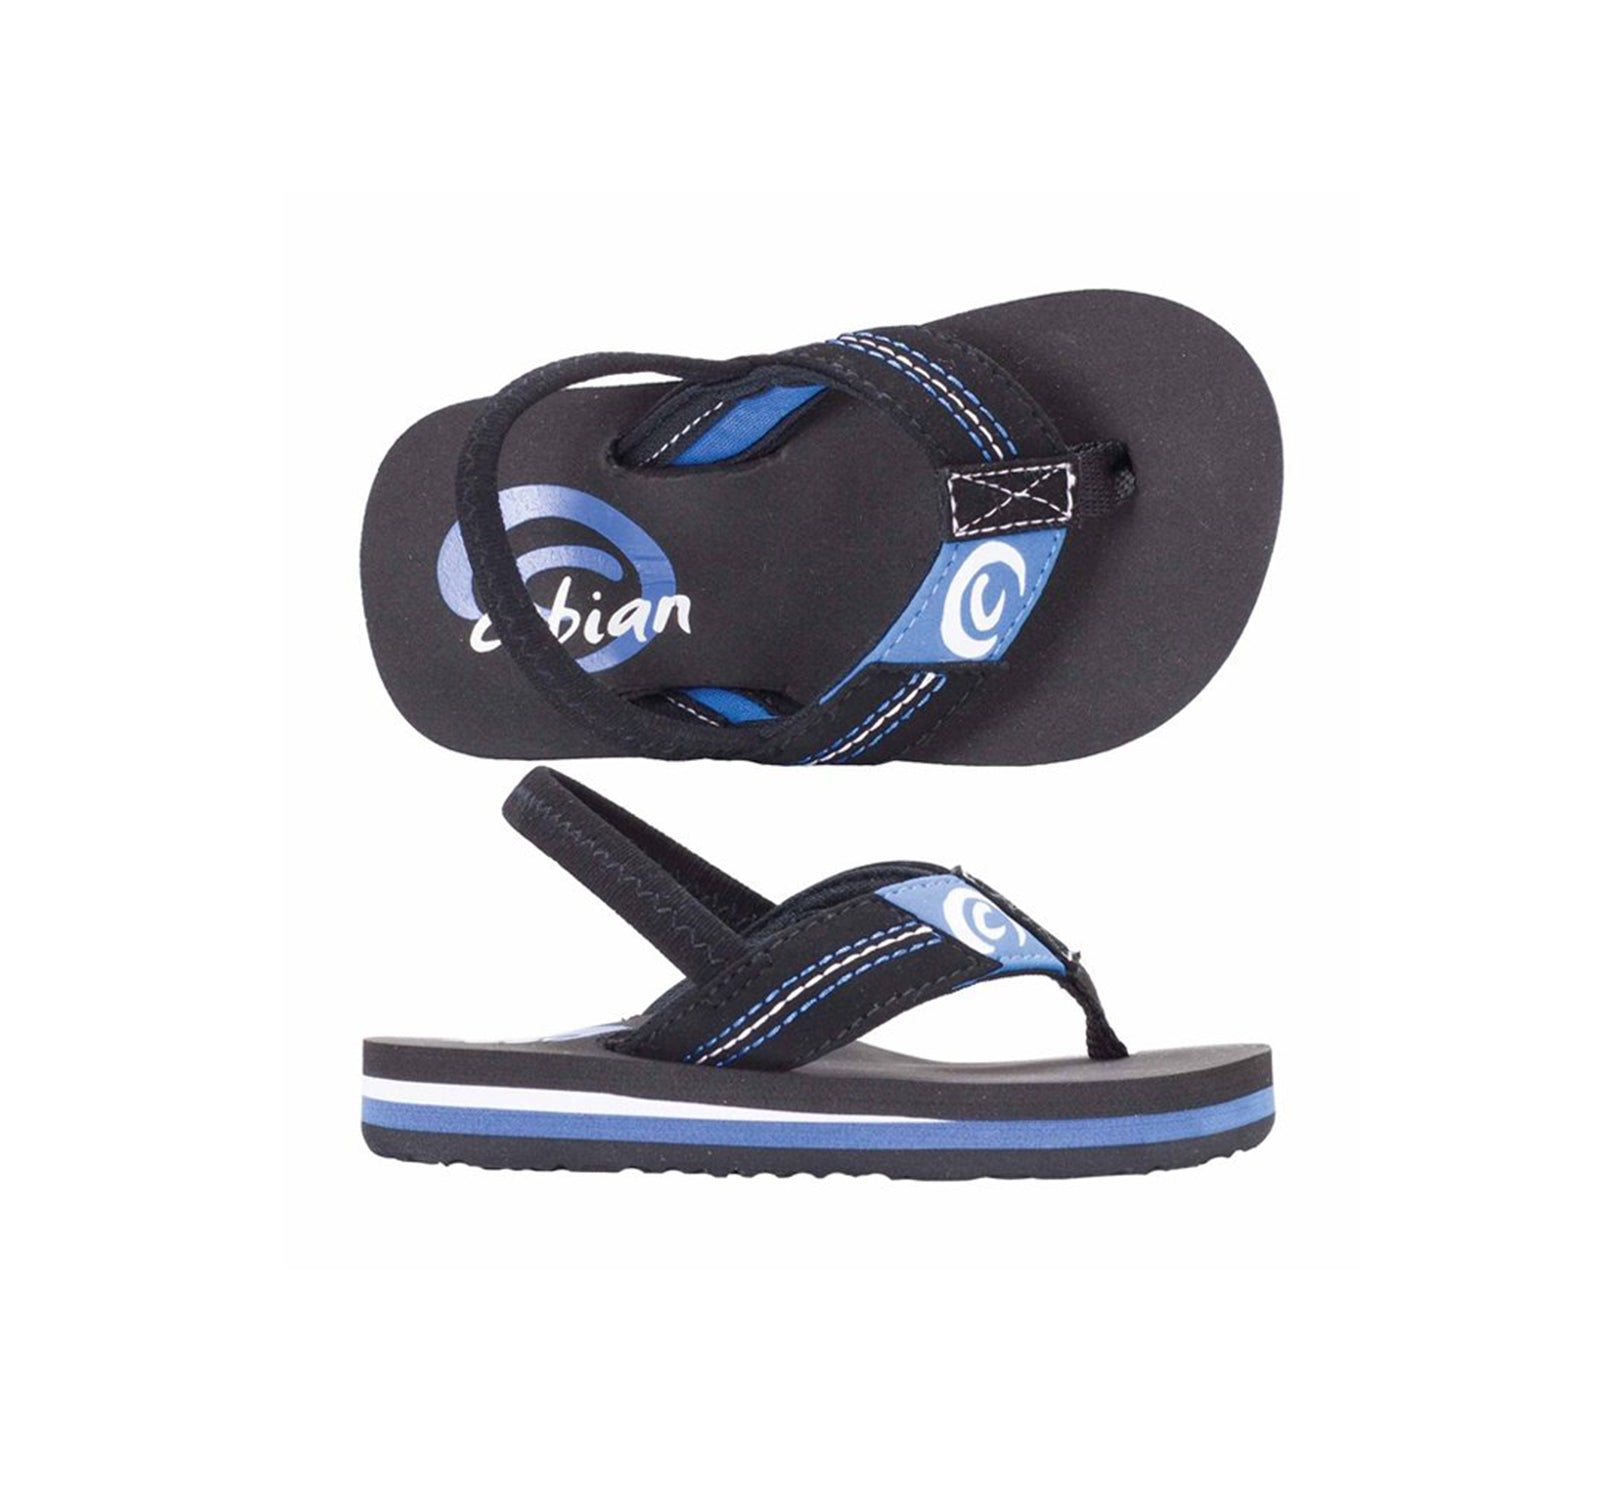 Cobian Floatie Youth Sandals